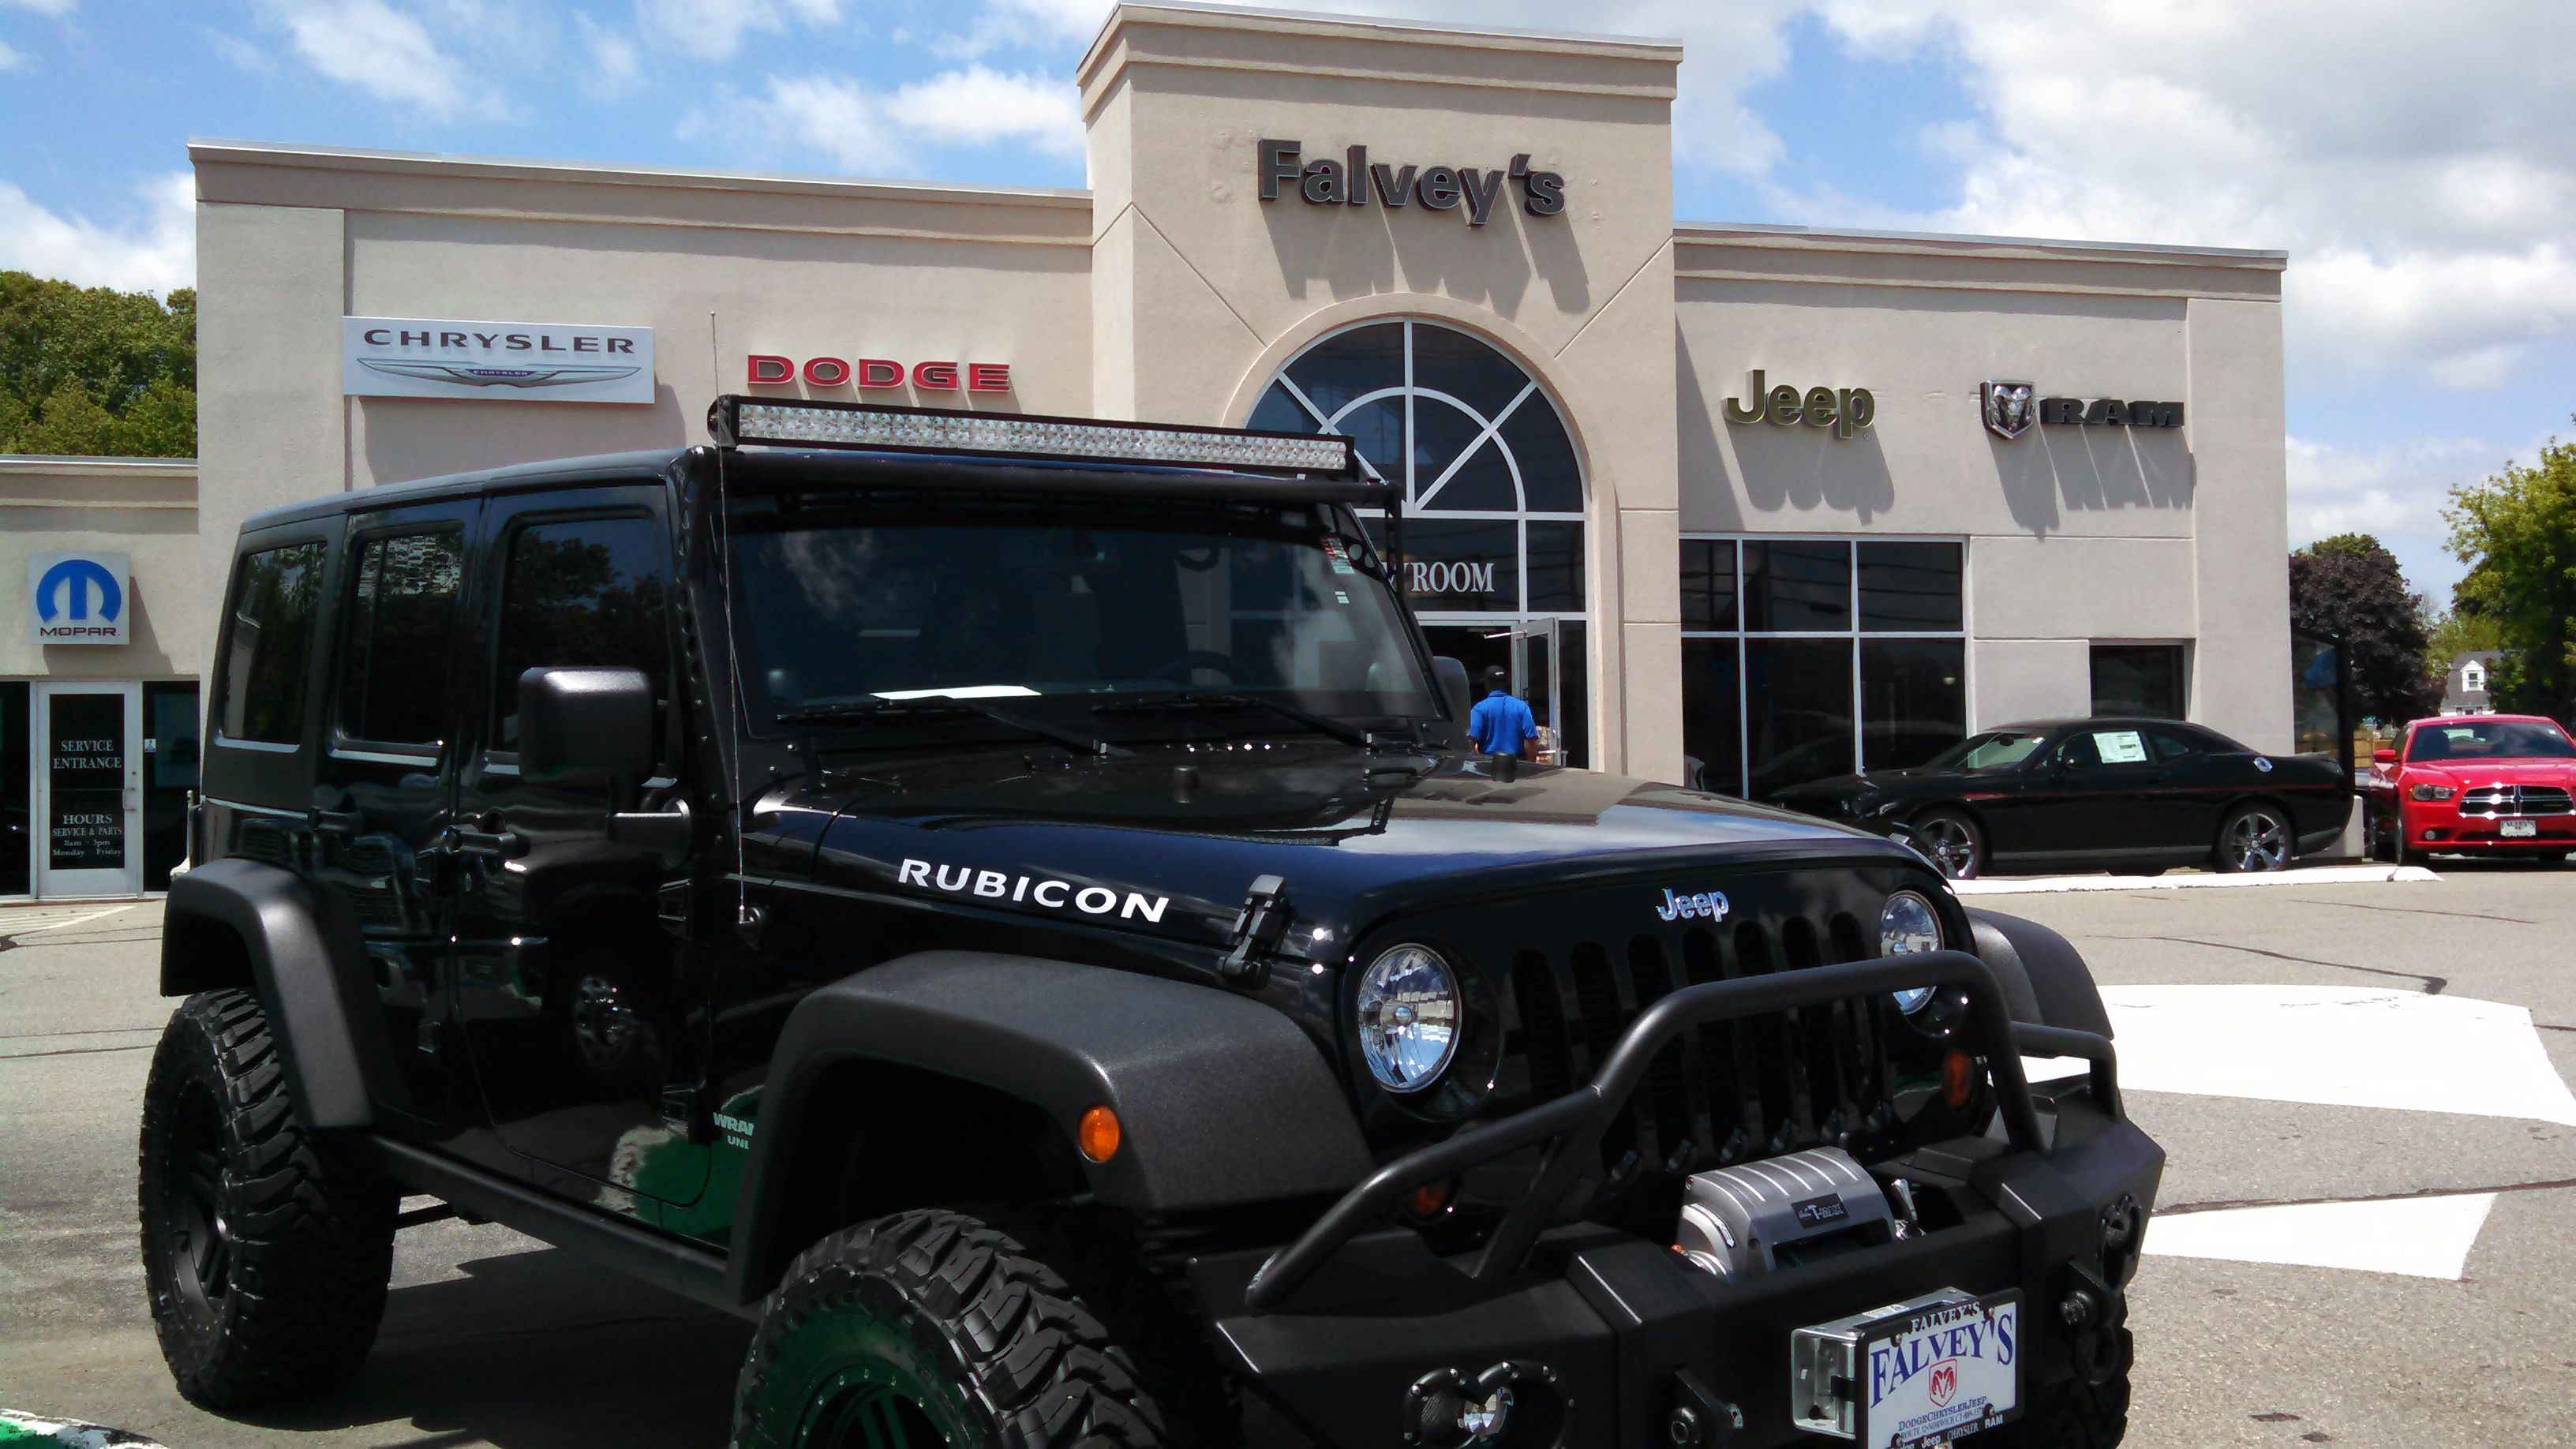 2013 Jeep Wrangler Rubicon Only 10k Miles With Over 10 000 In Accessories Falveys Com 860 303 9106 Jeep Suv Suv Car